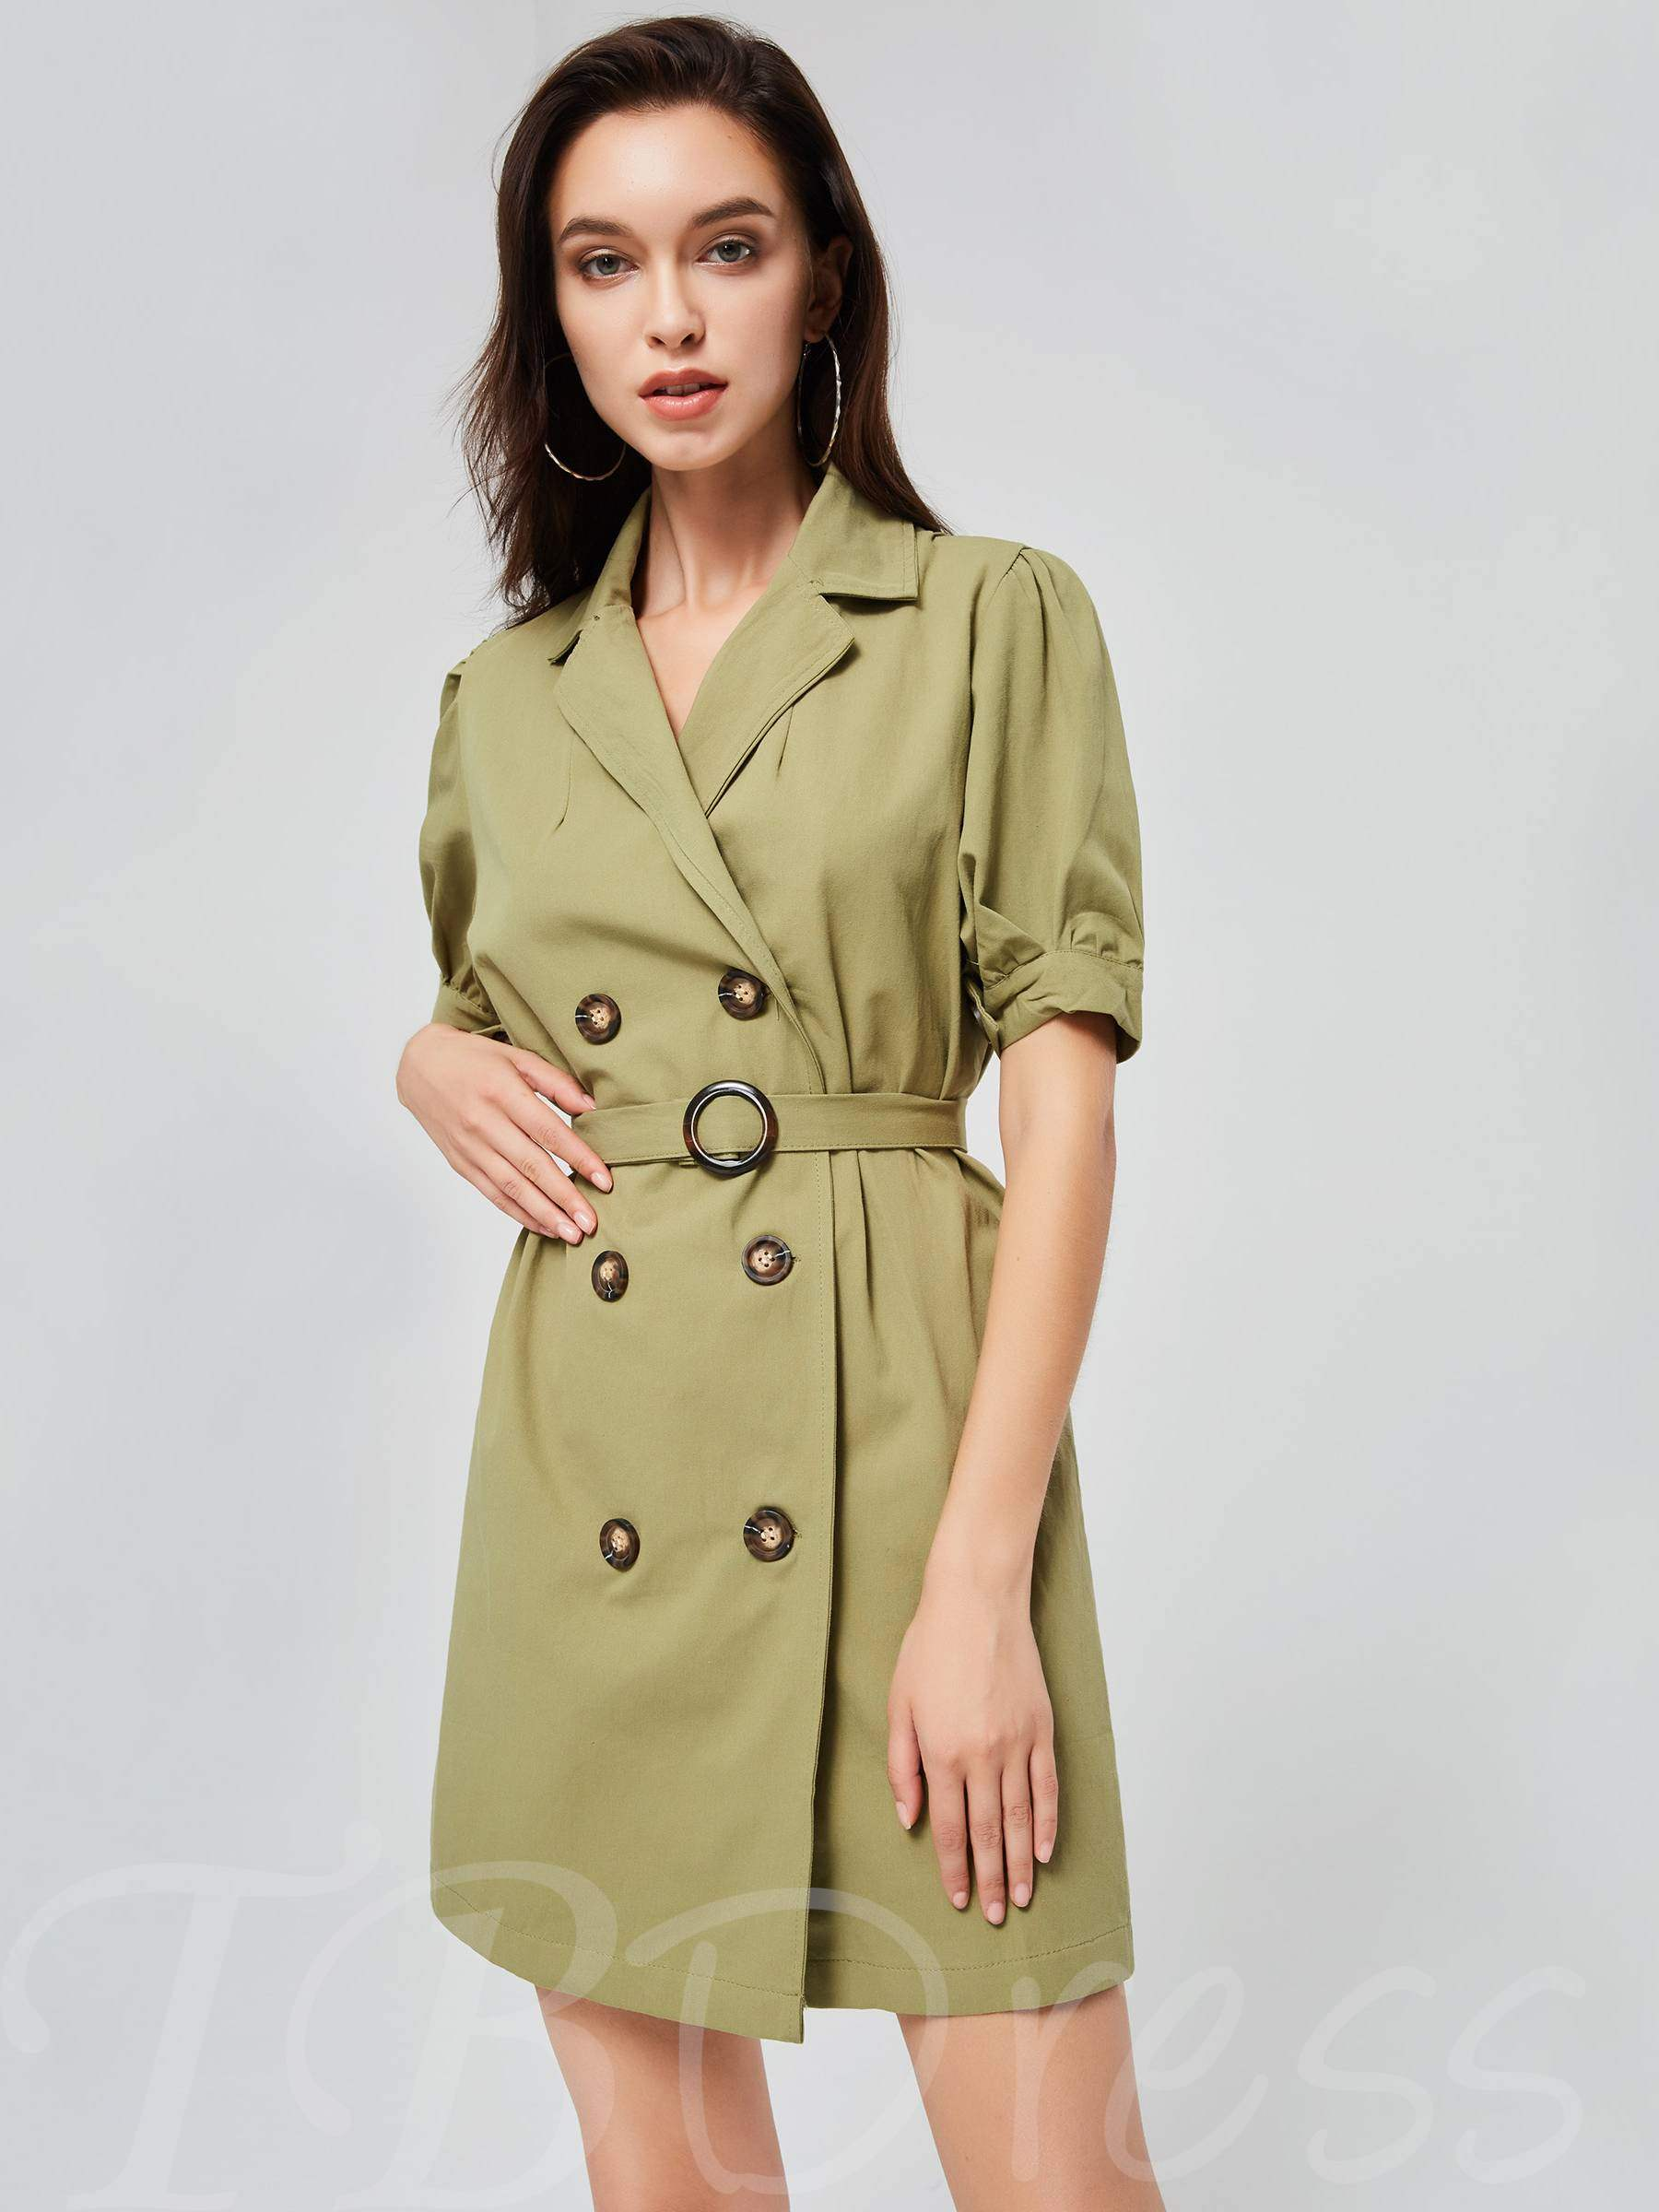 Buy Double-Breasted Lapel Women's Day Dress, Fall,Winter, 13391037 for $18.83 in TBDress store